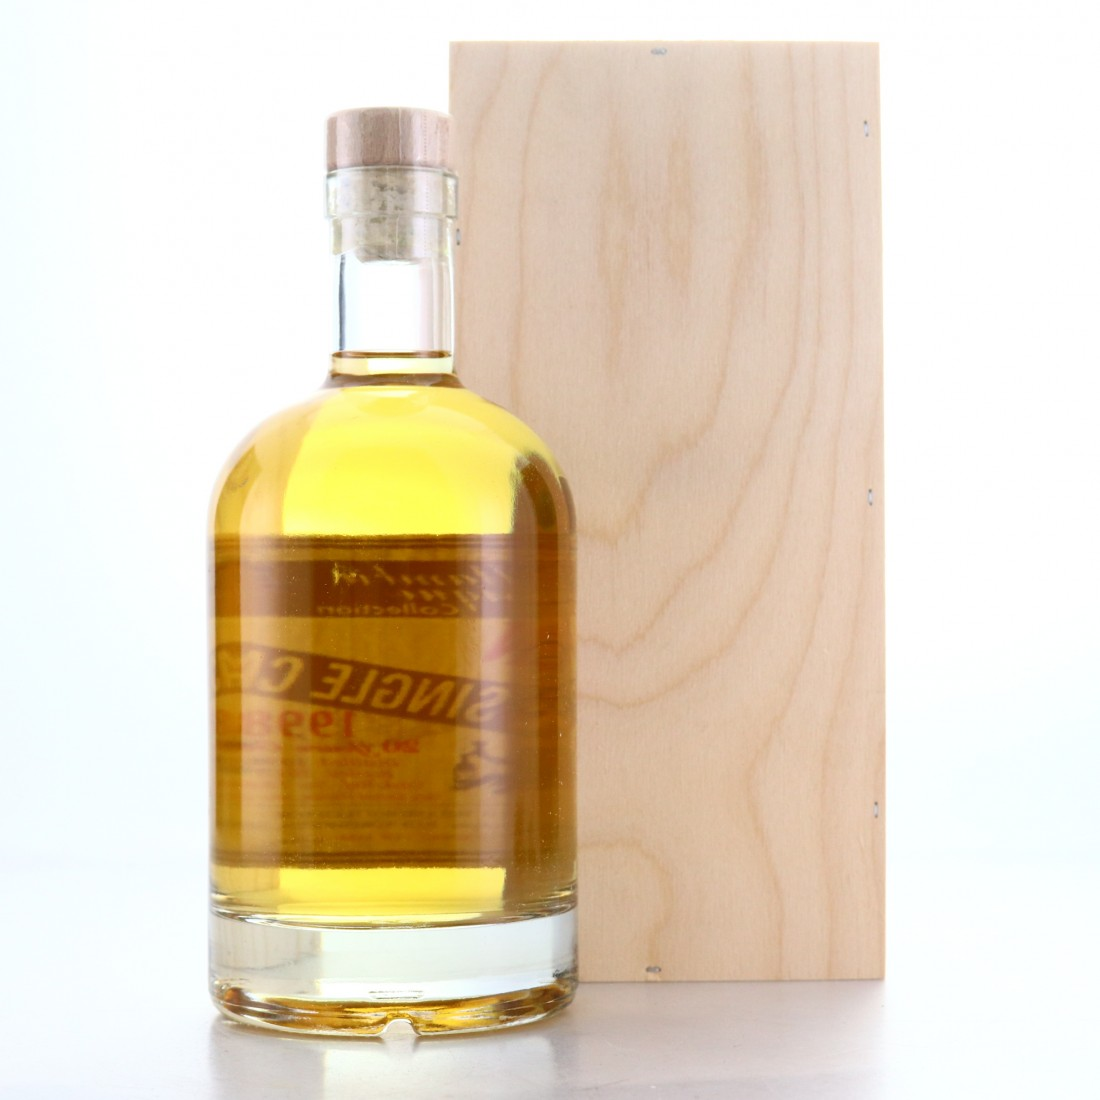 Hampden 1998 Alambic Classique 20 Year Old